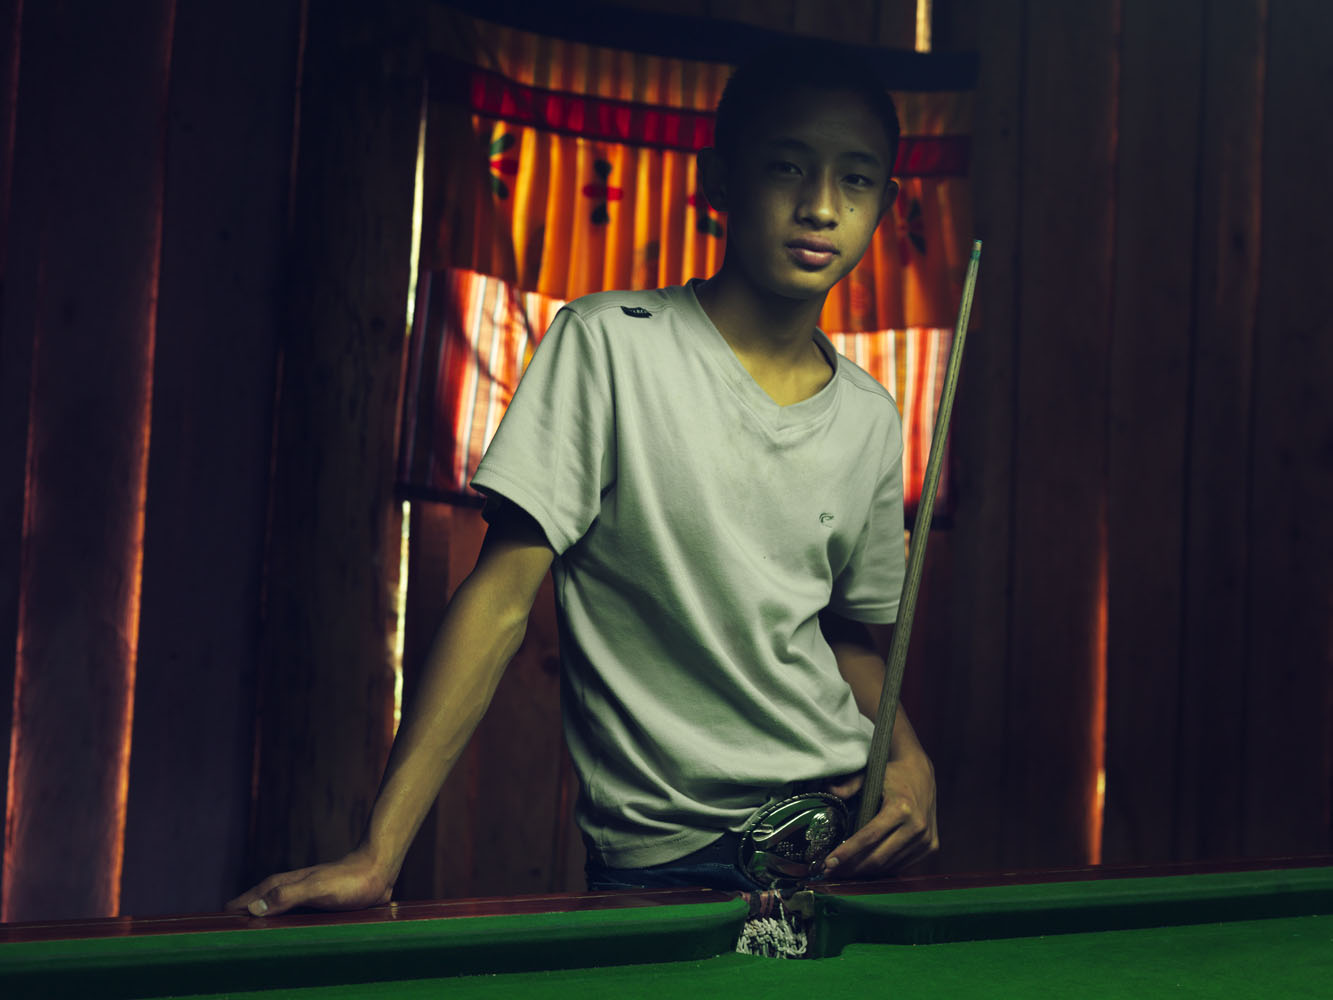 Young boys spend their time playing pool and snooker around the outskirts of Paro.